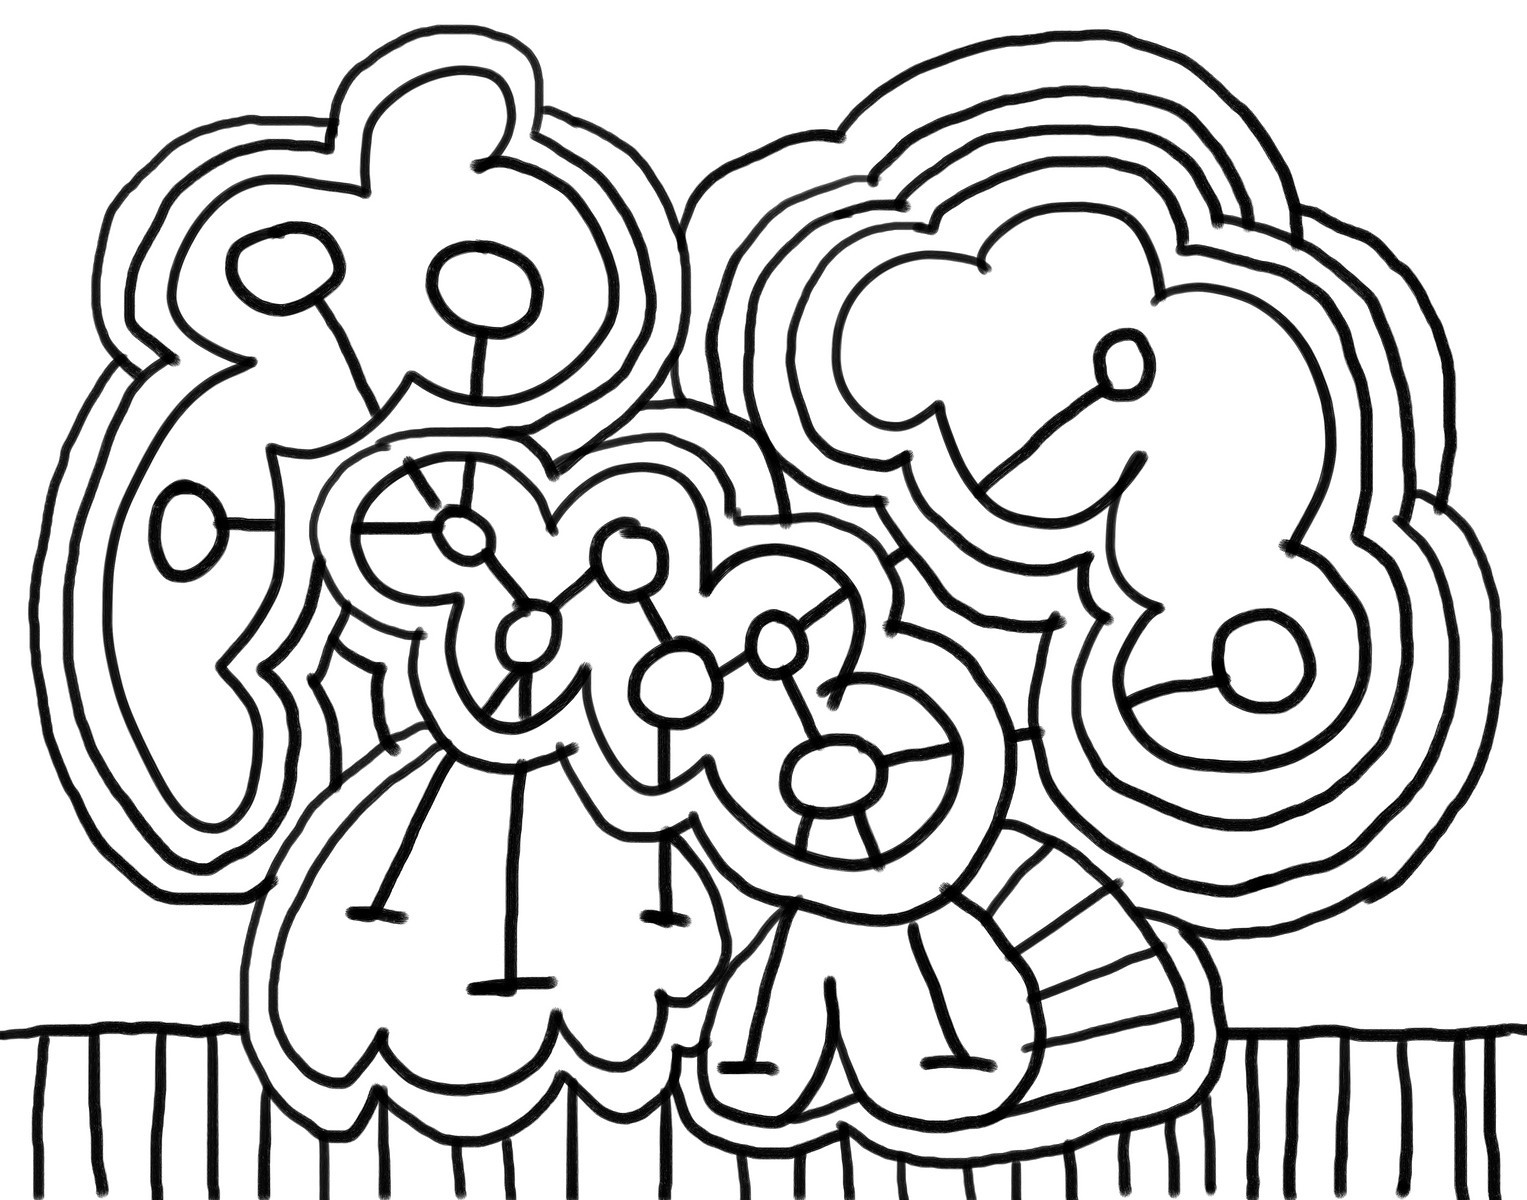 Online kids coloring book - Example